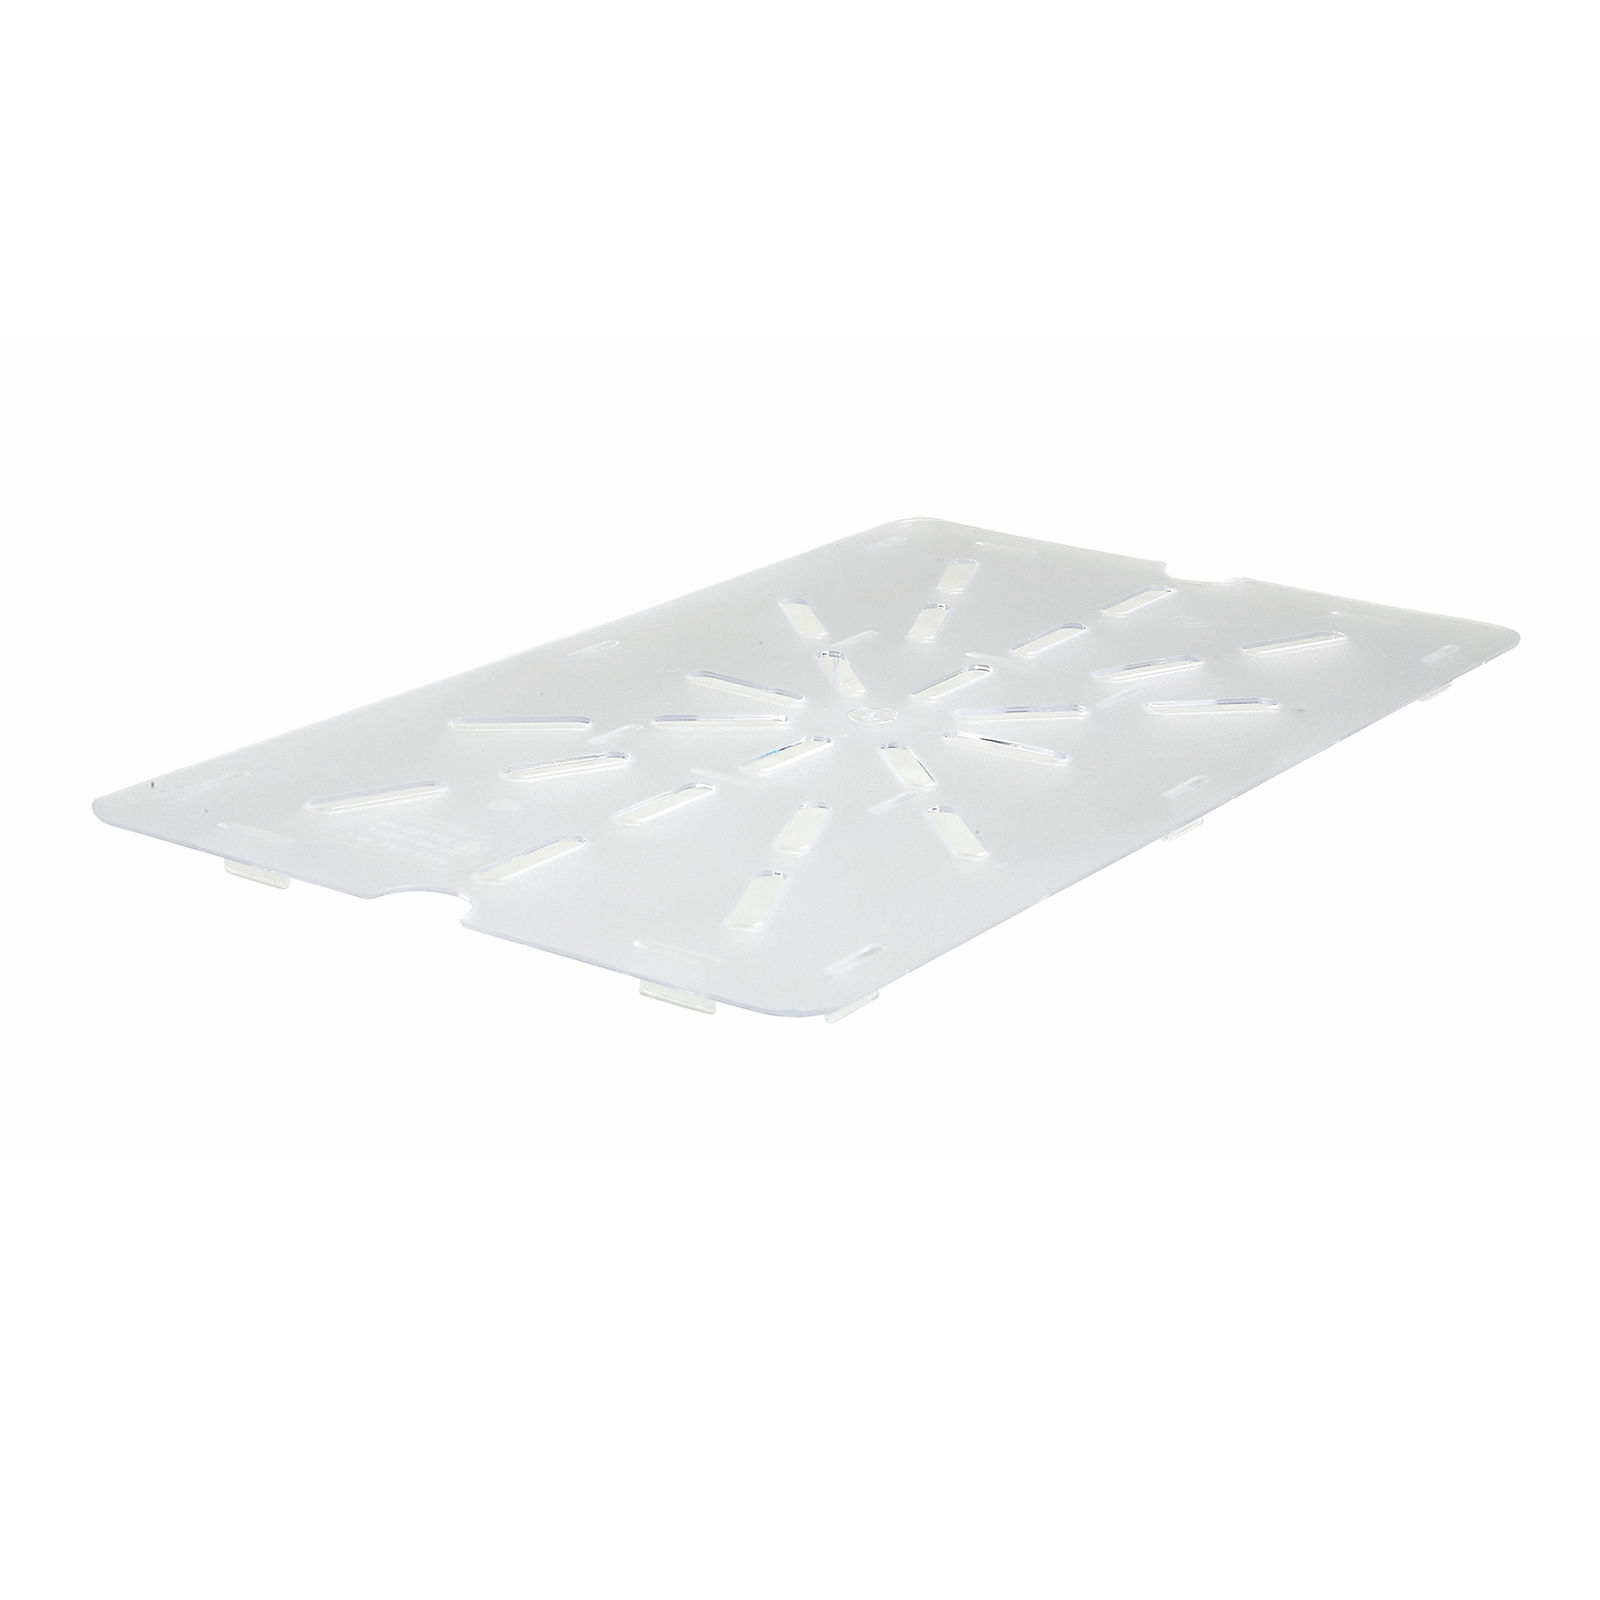 2410-016 Winco SP71DS food pan Full size drain tray